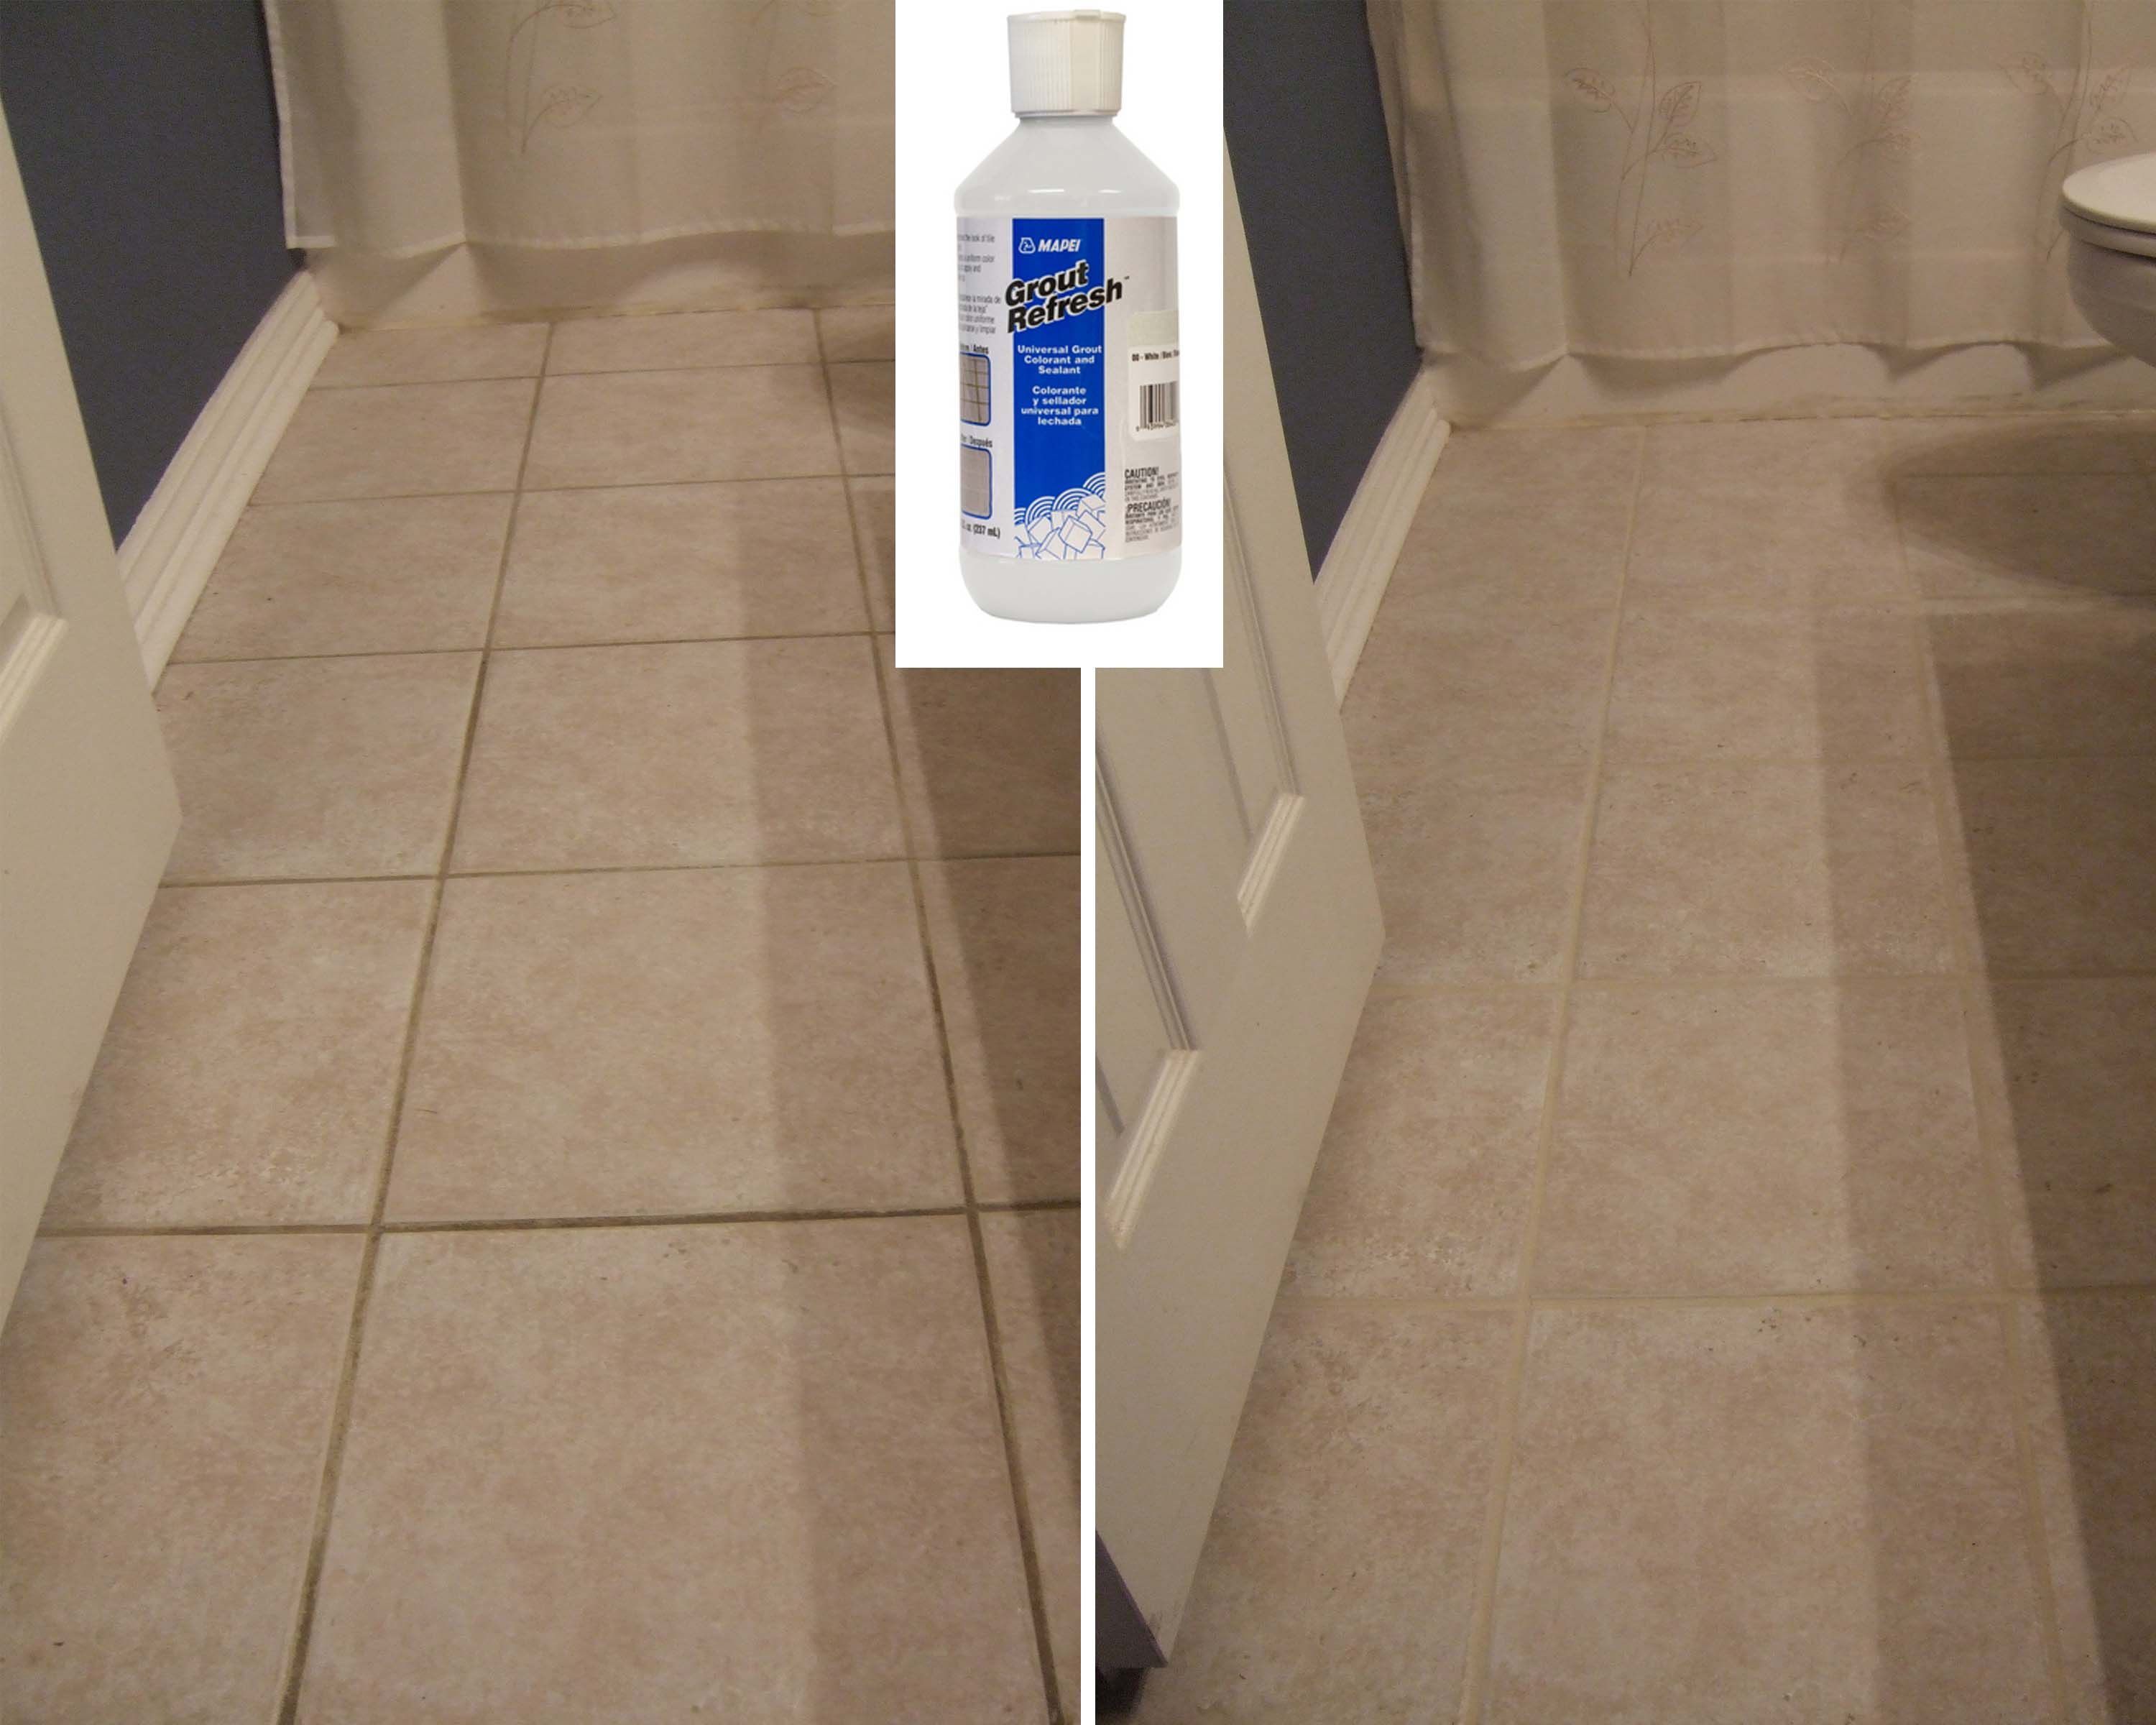 How to clean grout with peroxide baking soda grout clean to clean grout baking soda and hydrogen peroxide paste let sit about 30 mins dailygadgetfo Choice Image